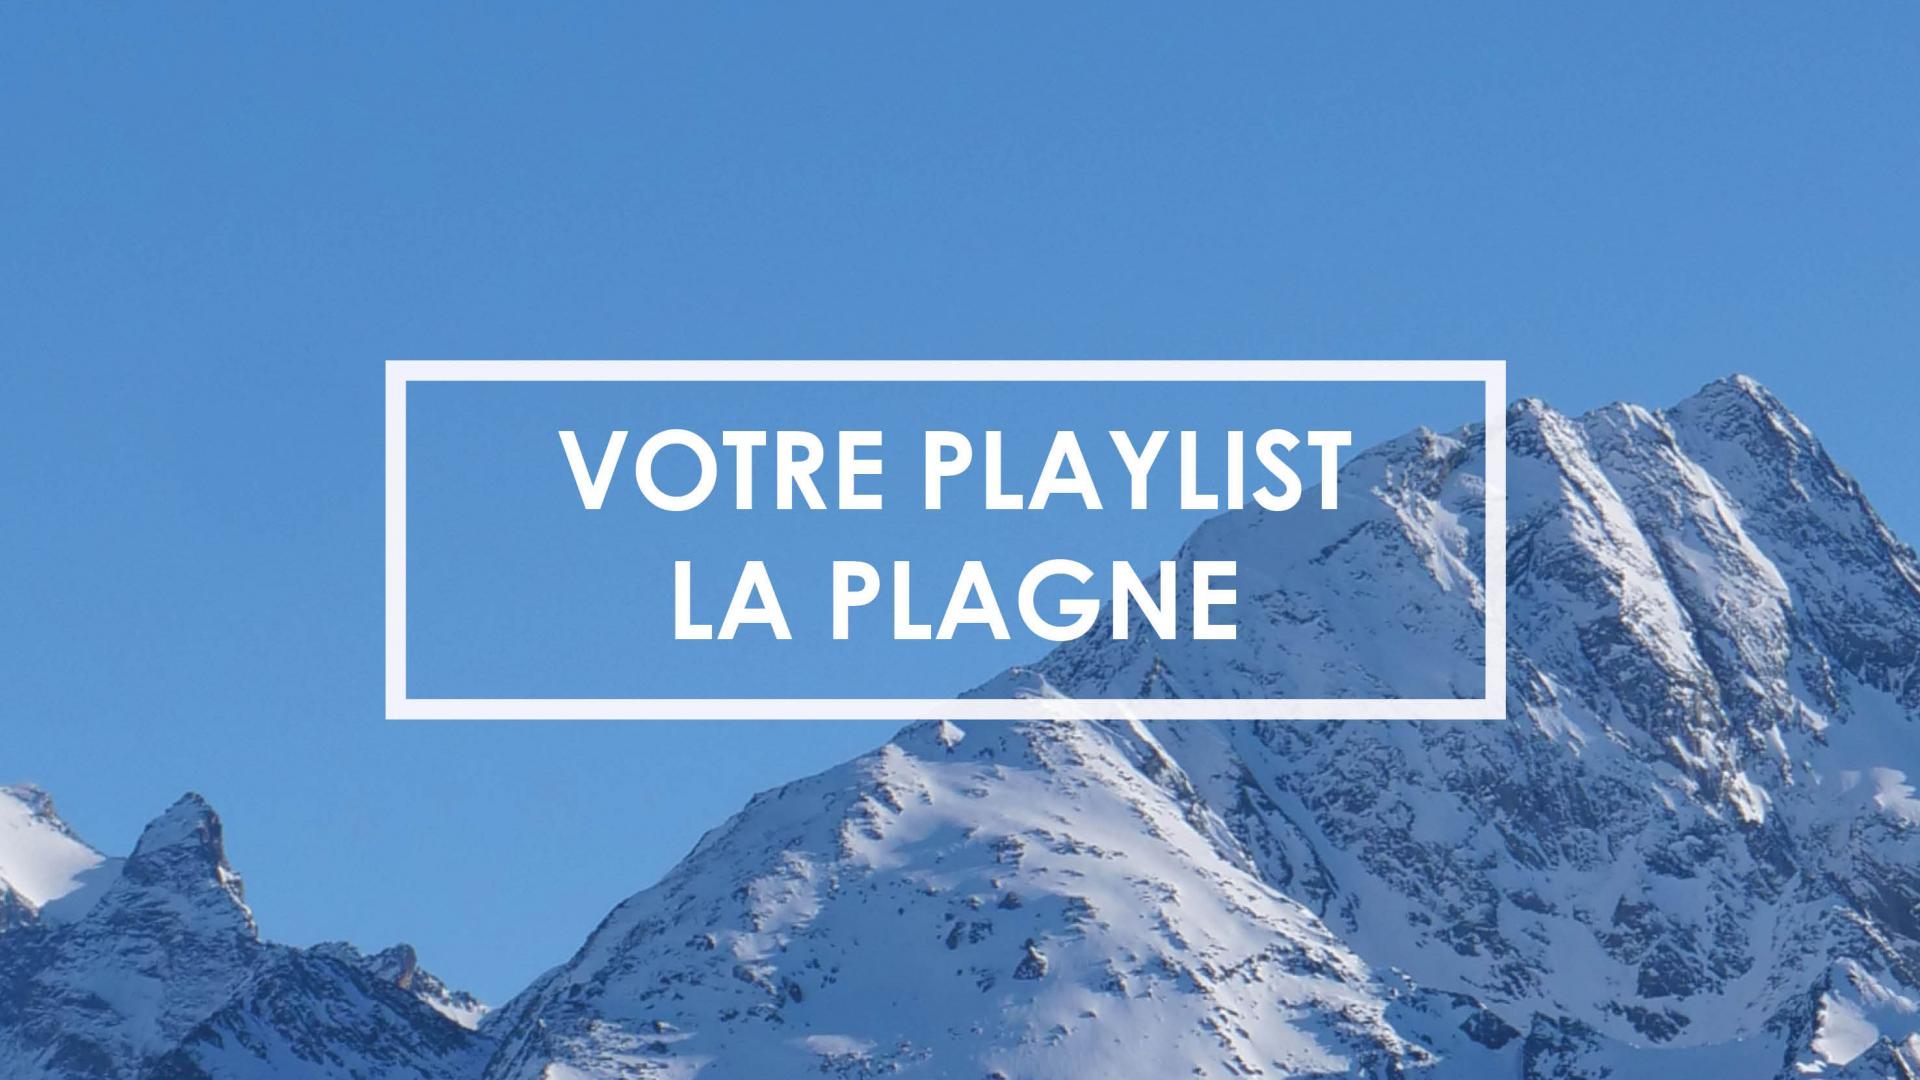 La playlist La Plagne